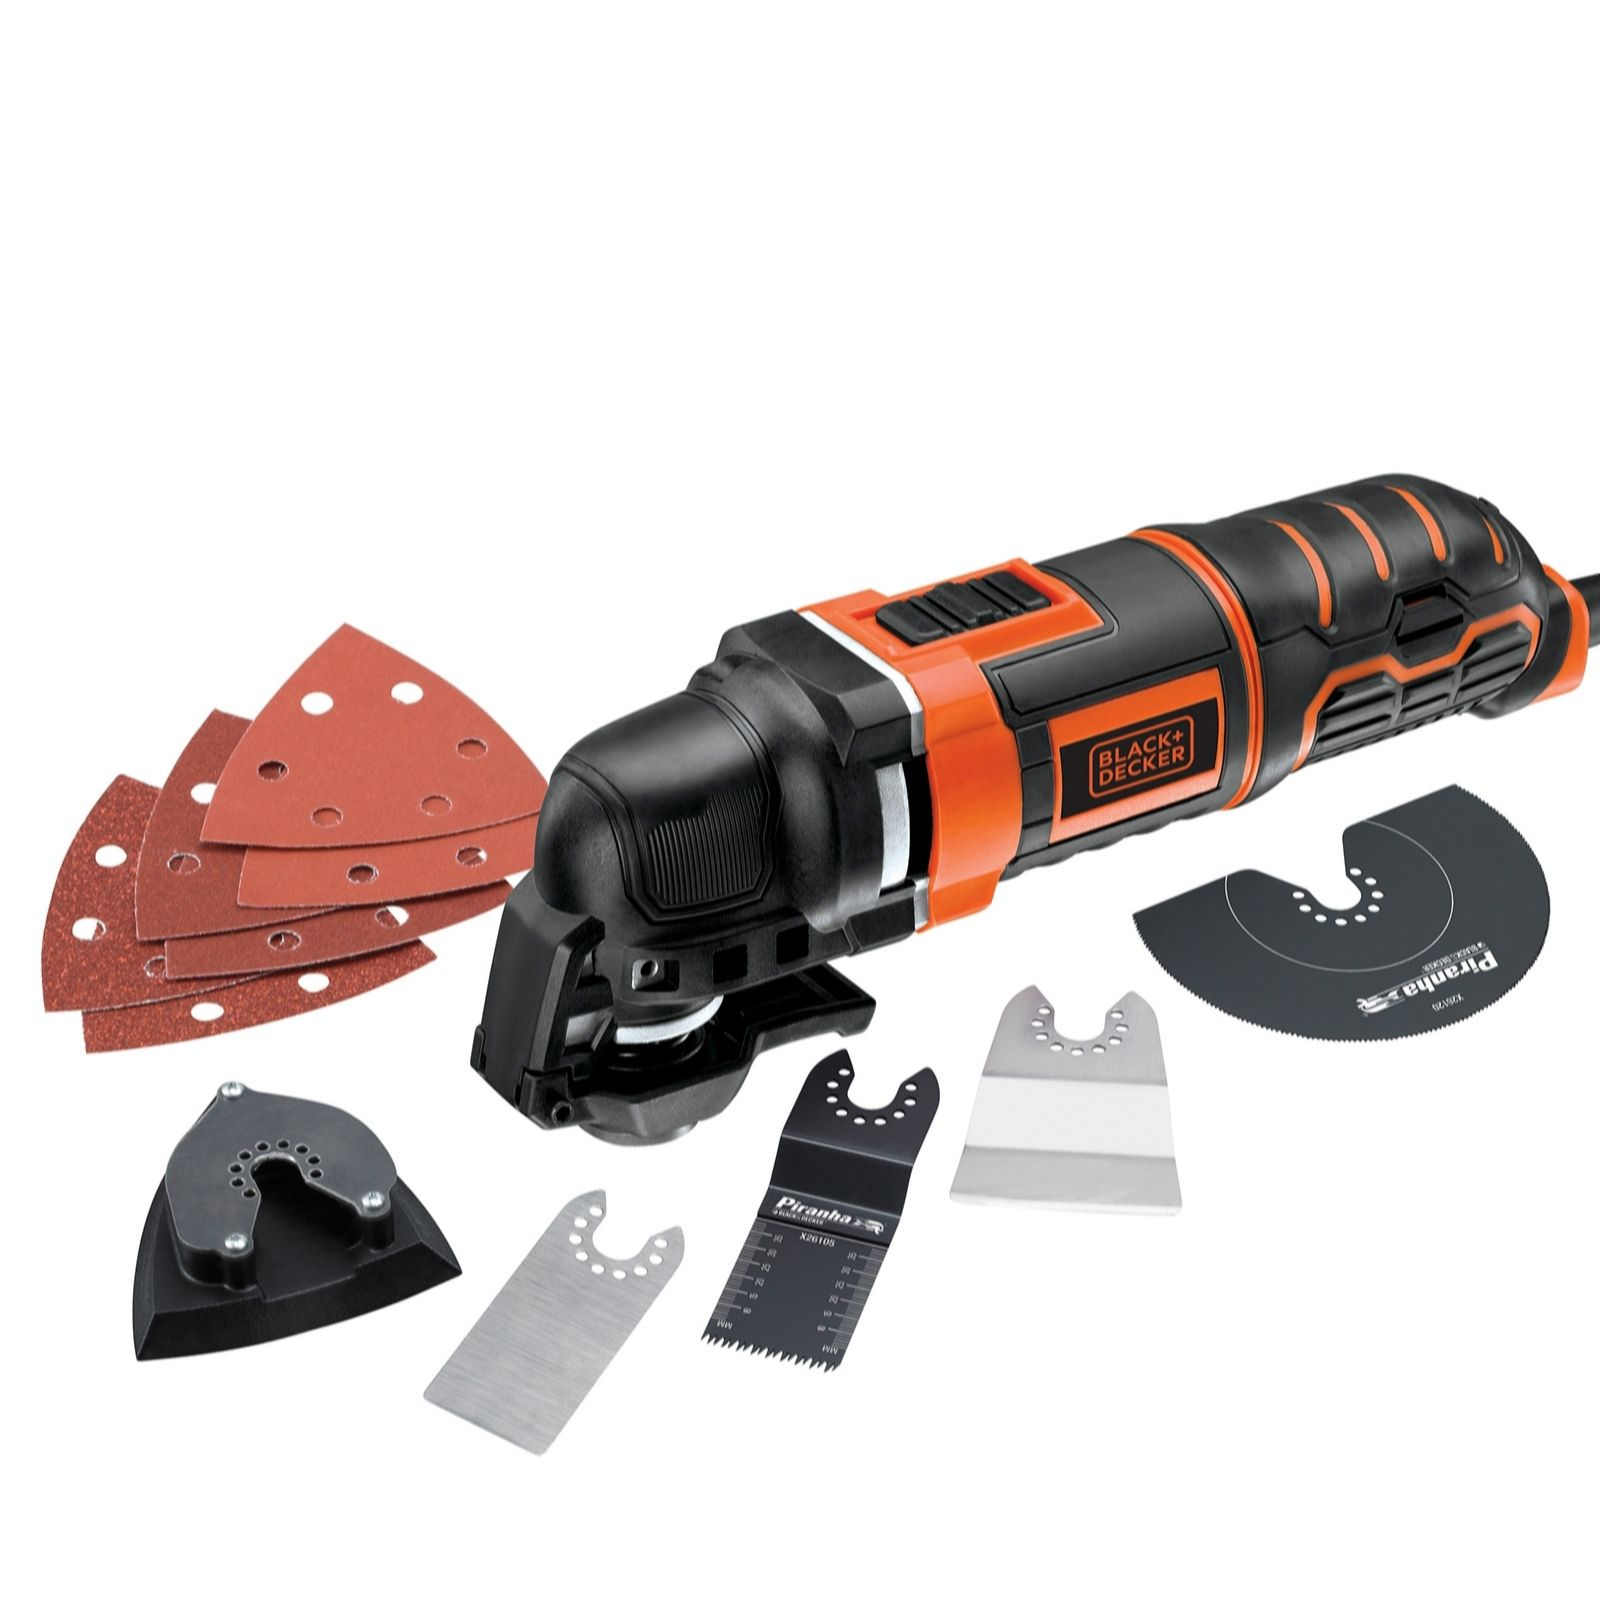 Black & Decker 300W Multi-Oscillating Tool With 12 Accessories - 507355